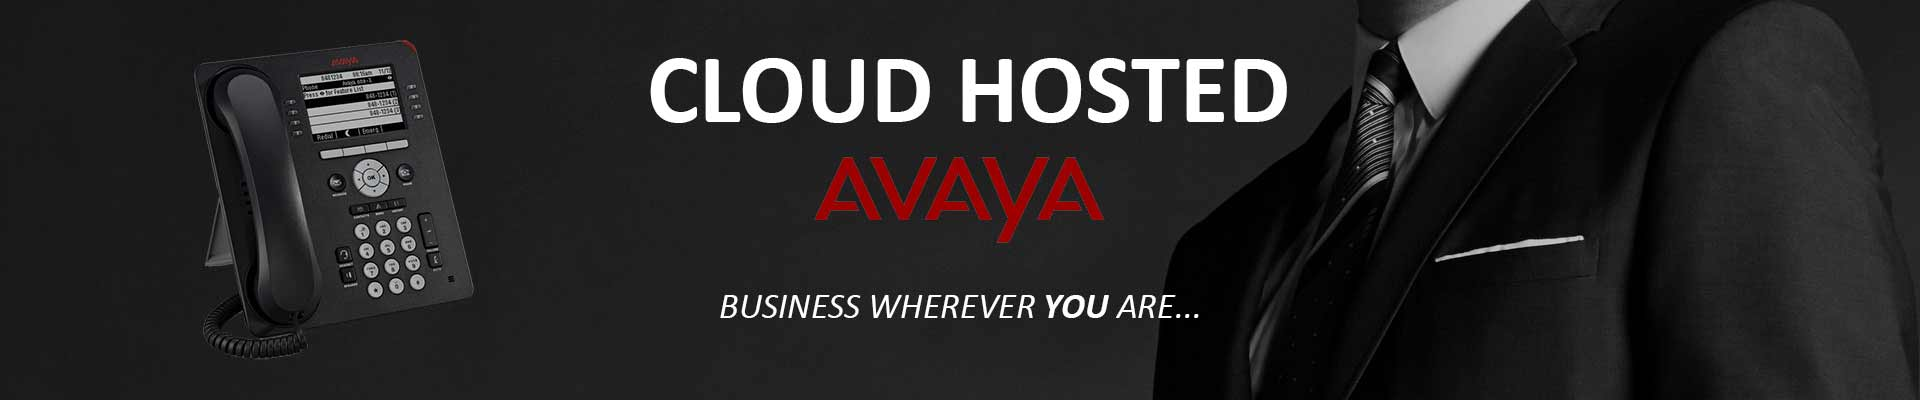 assets/AVAYA-CLOUD-HOSTED-PABX.jpg